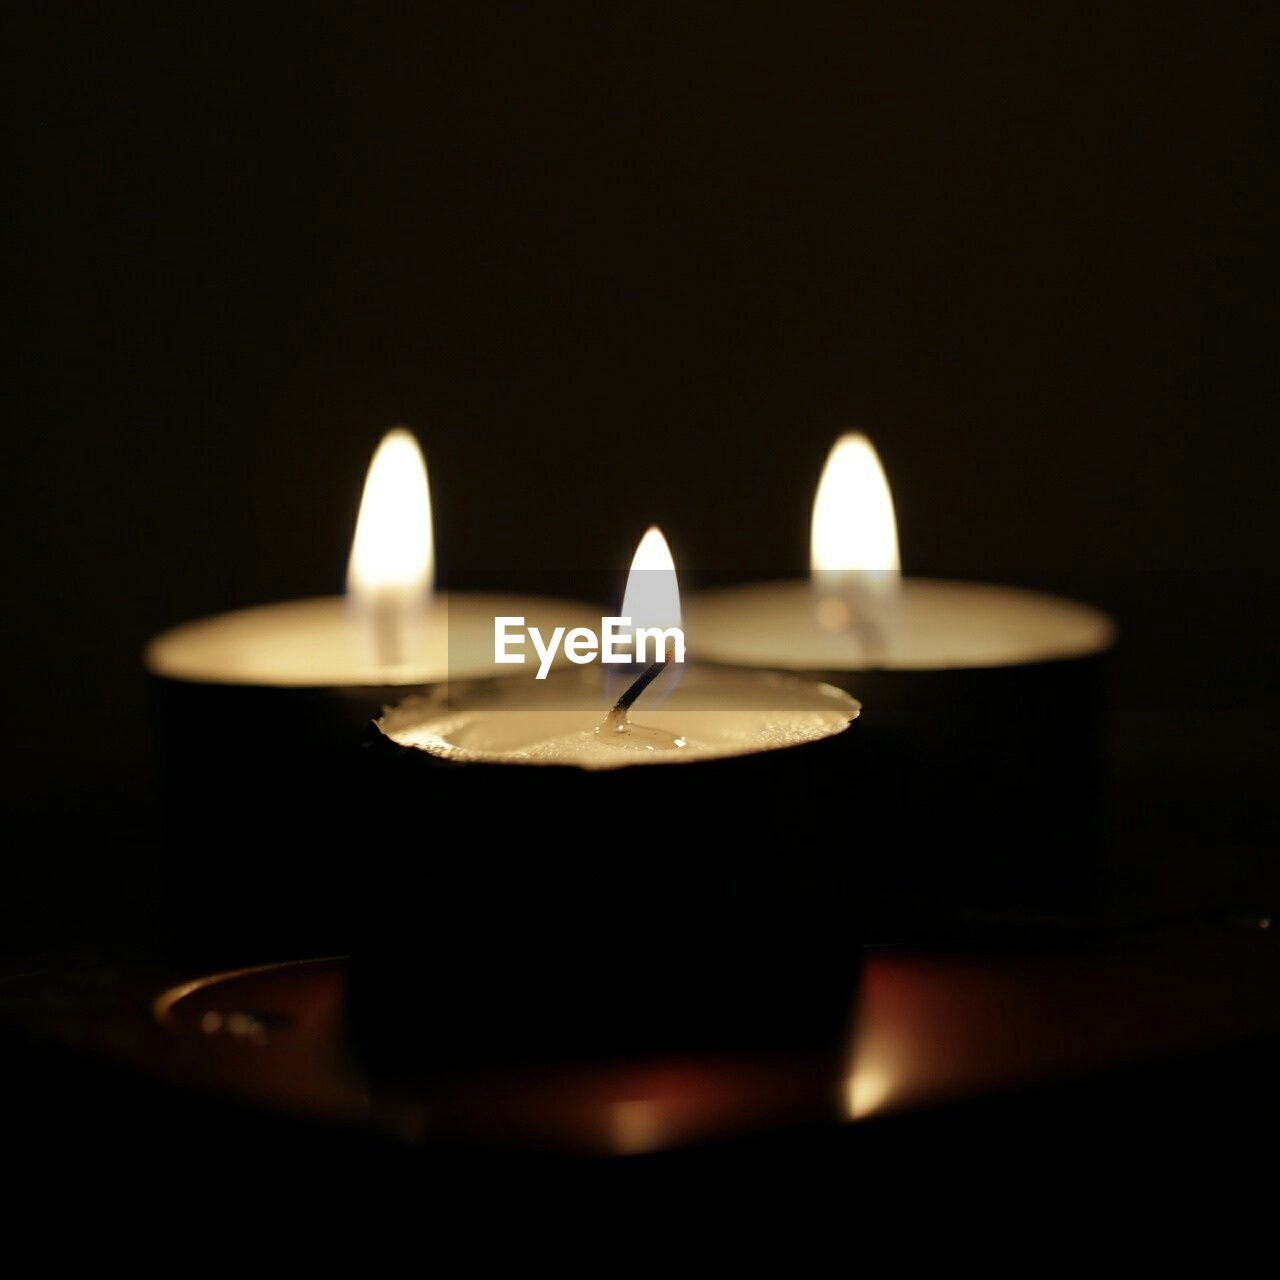 Lit Tealight Candles In Dark Room